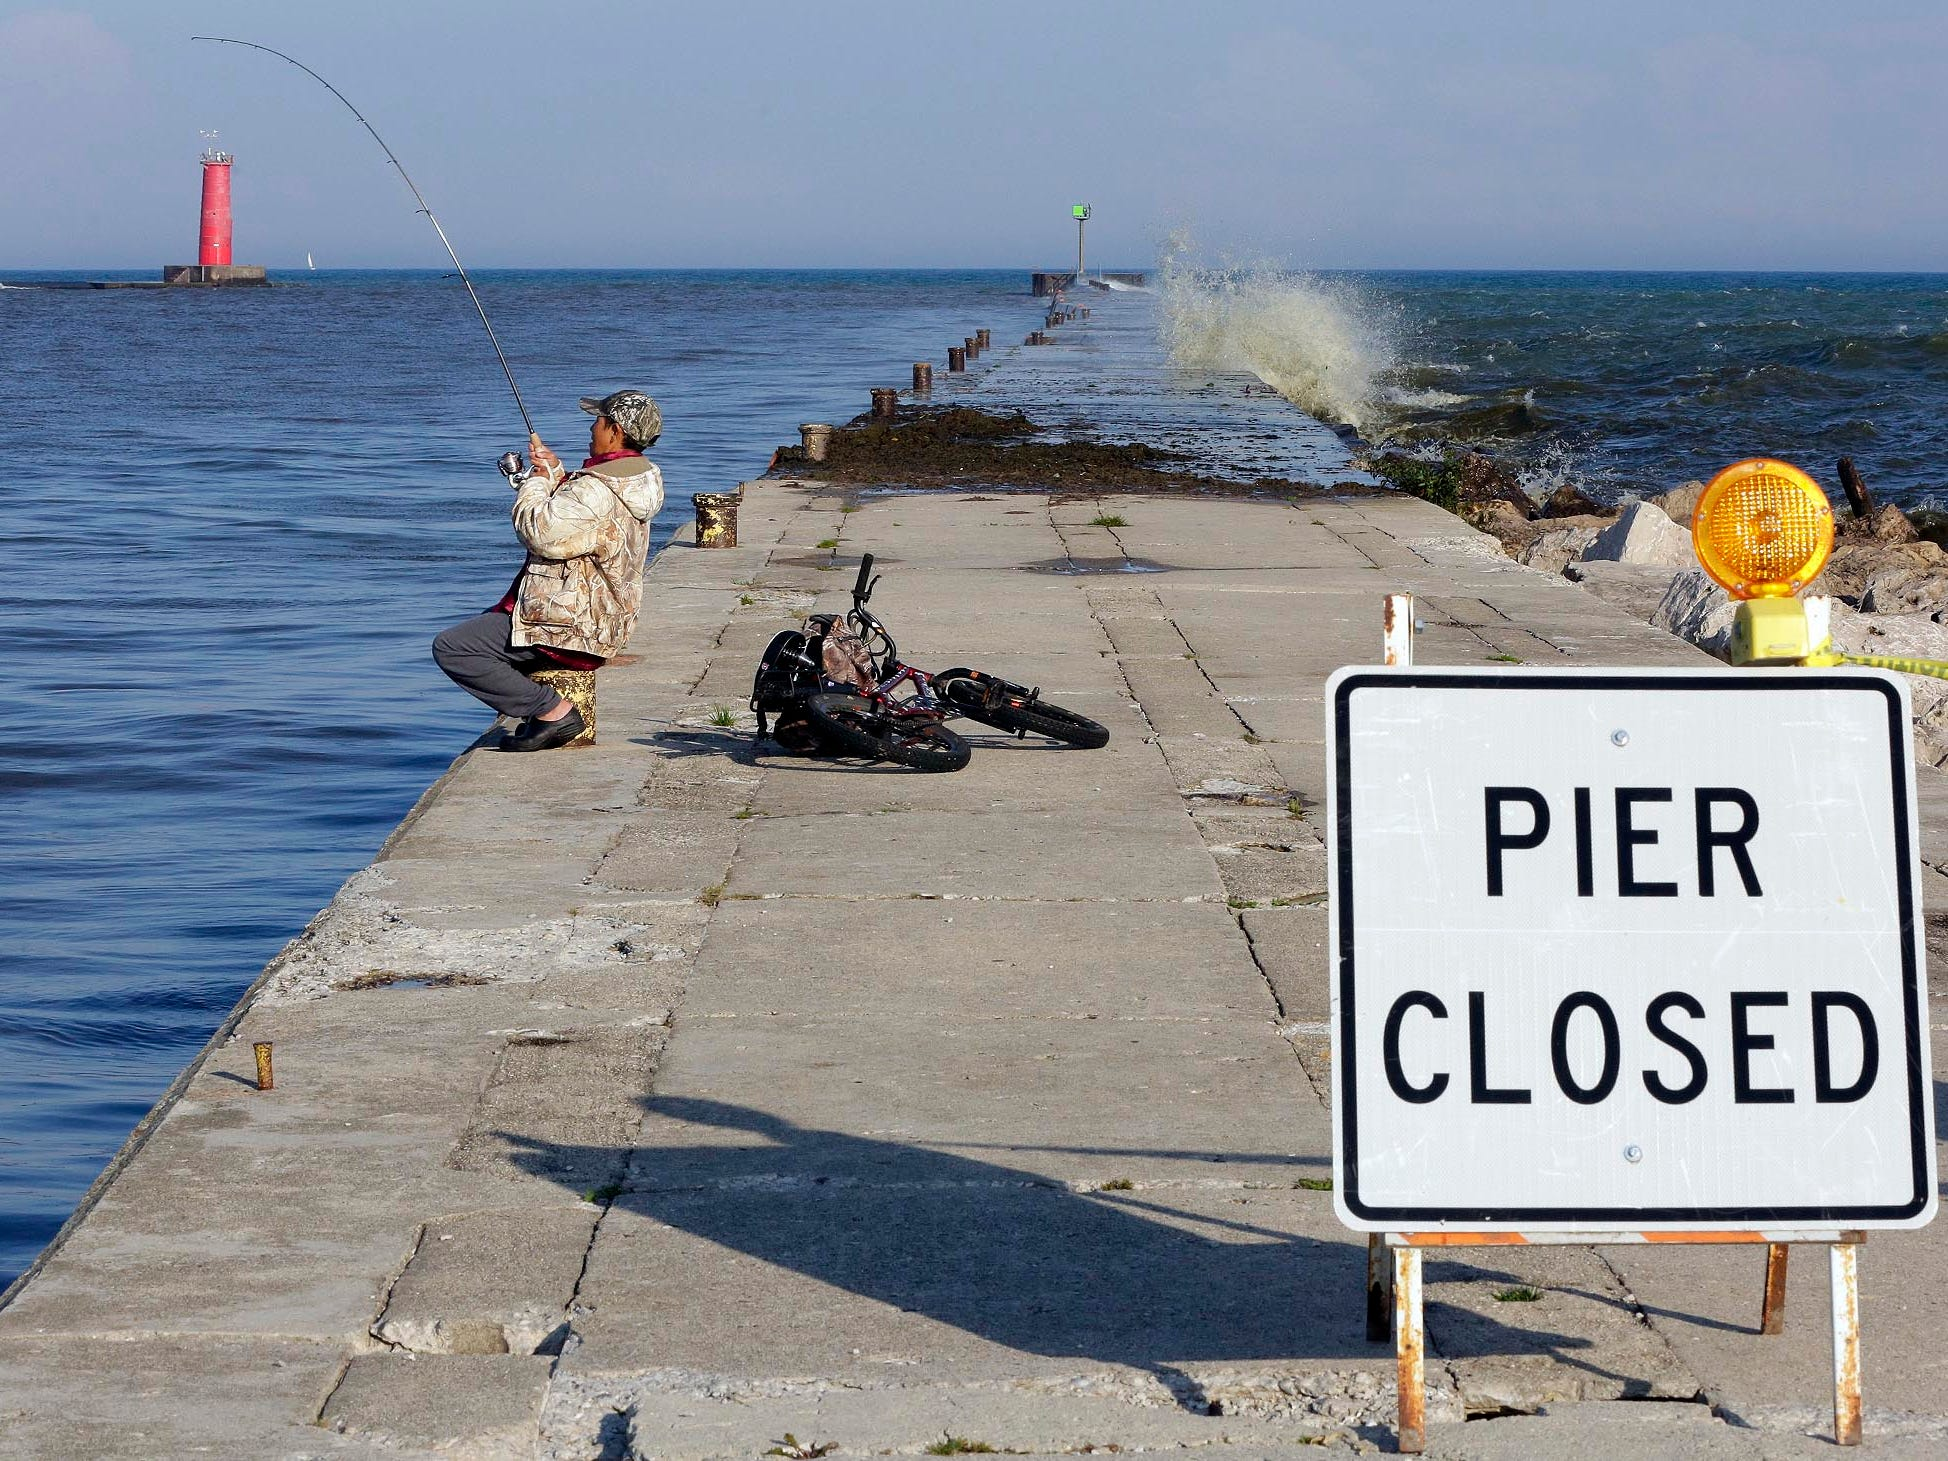 A fisherman works with his rod on the dry part of South Pier, which was closed by officials due to strong waves Oct. 5, 2016, in Sheboygan, Wis.  FILE PHOTO